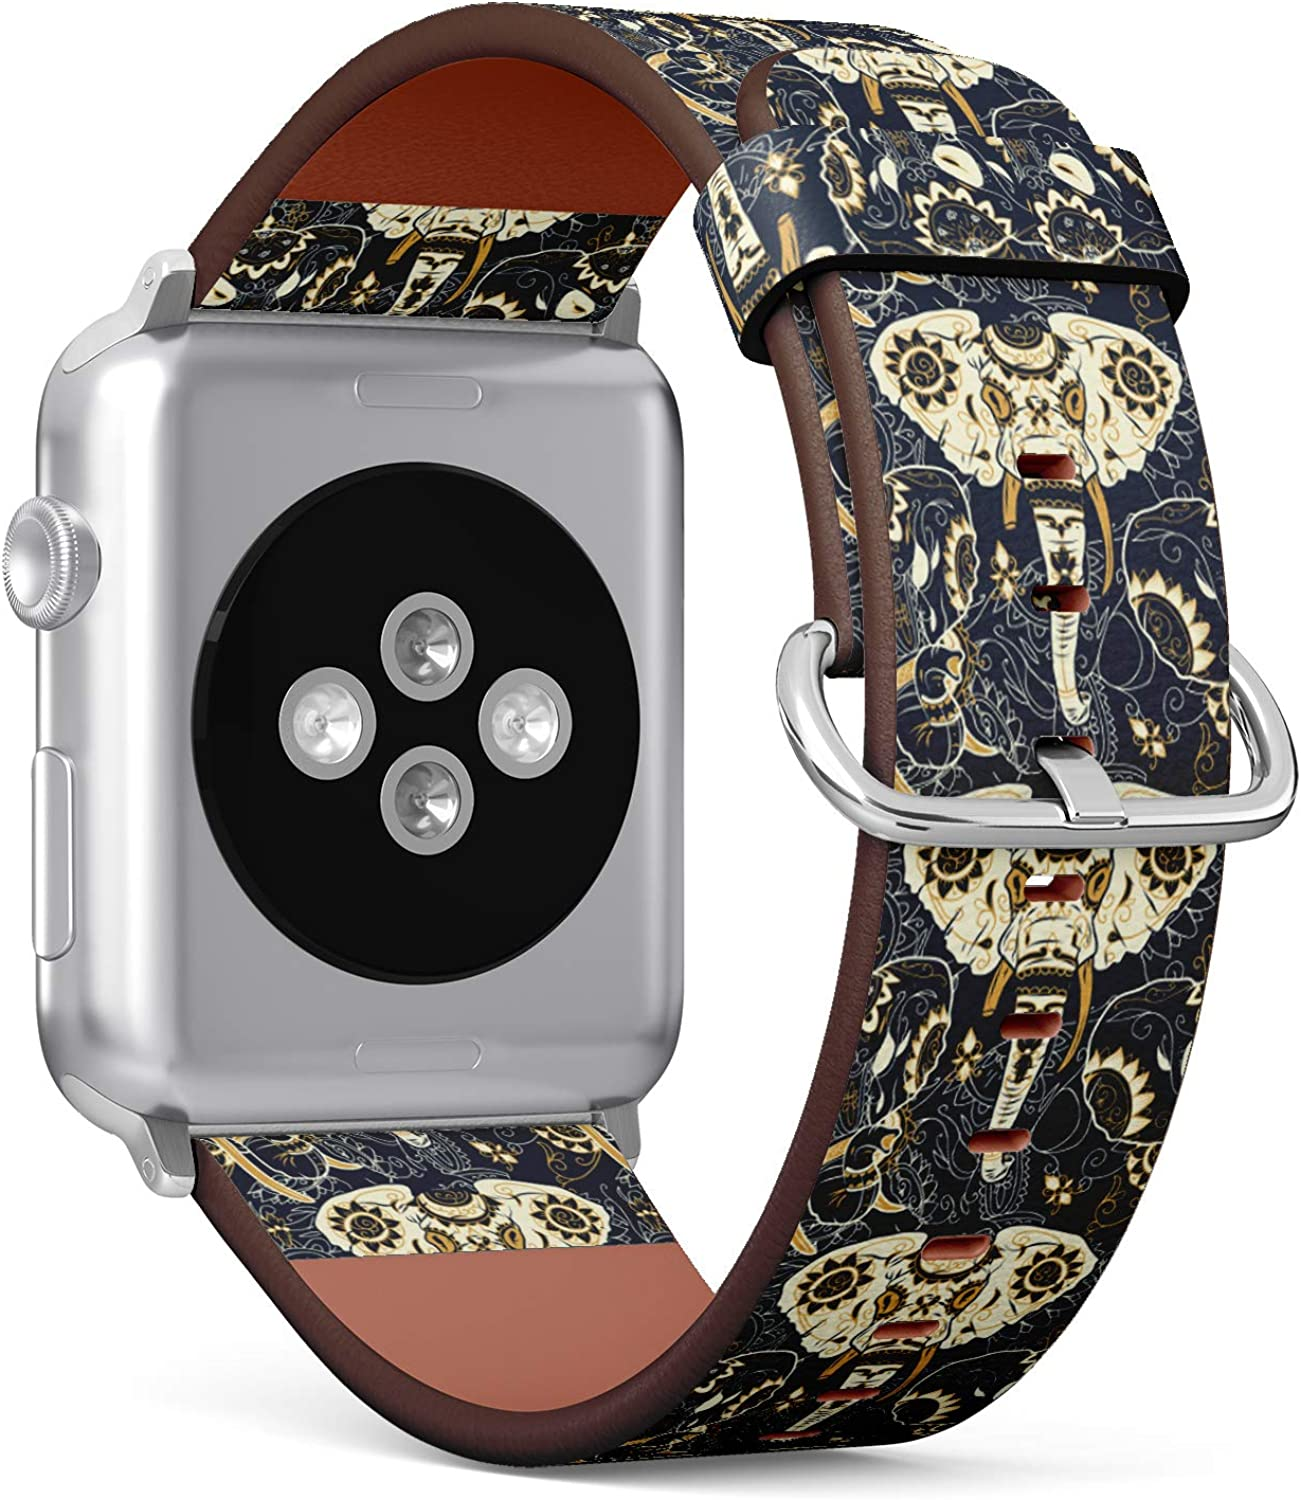 (Tribal Indian Elephant with Floral Ornament Pattern) Patterned Leather Wristband Strap for Apple Watch Series 4/3/2/1 gen,Replacement for iWatch 42mm / 44mm Bands